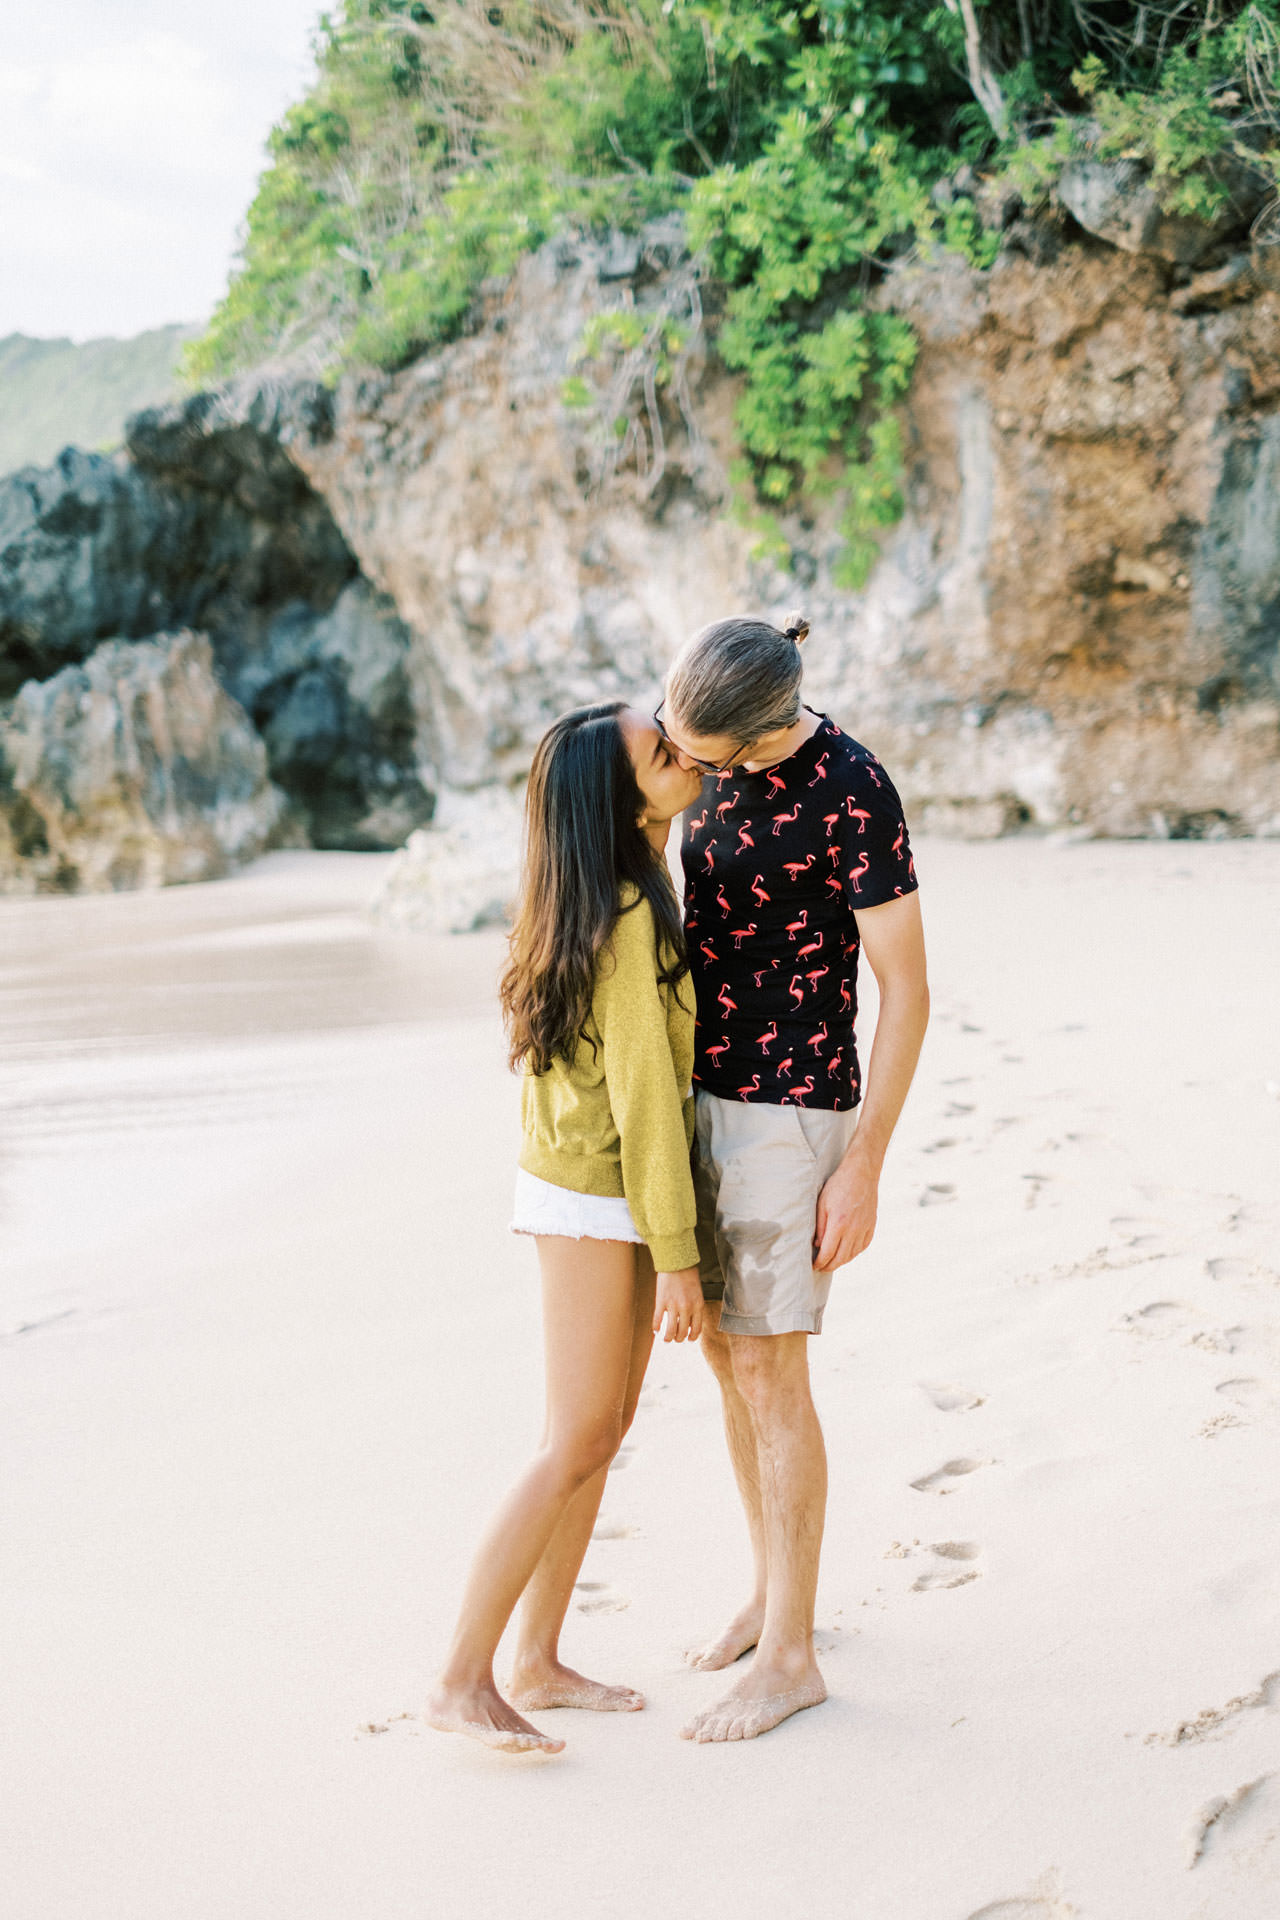 Bali's Beach Marriage Proposal with a Proposal Video! 32